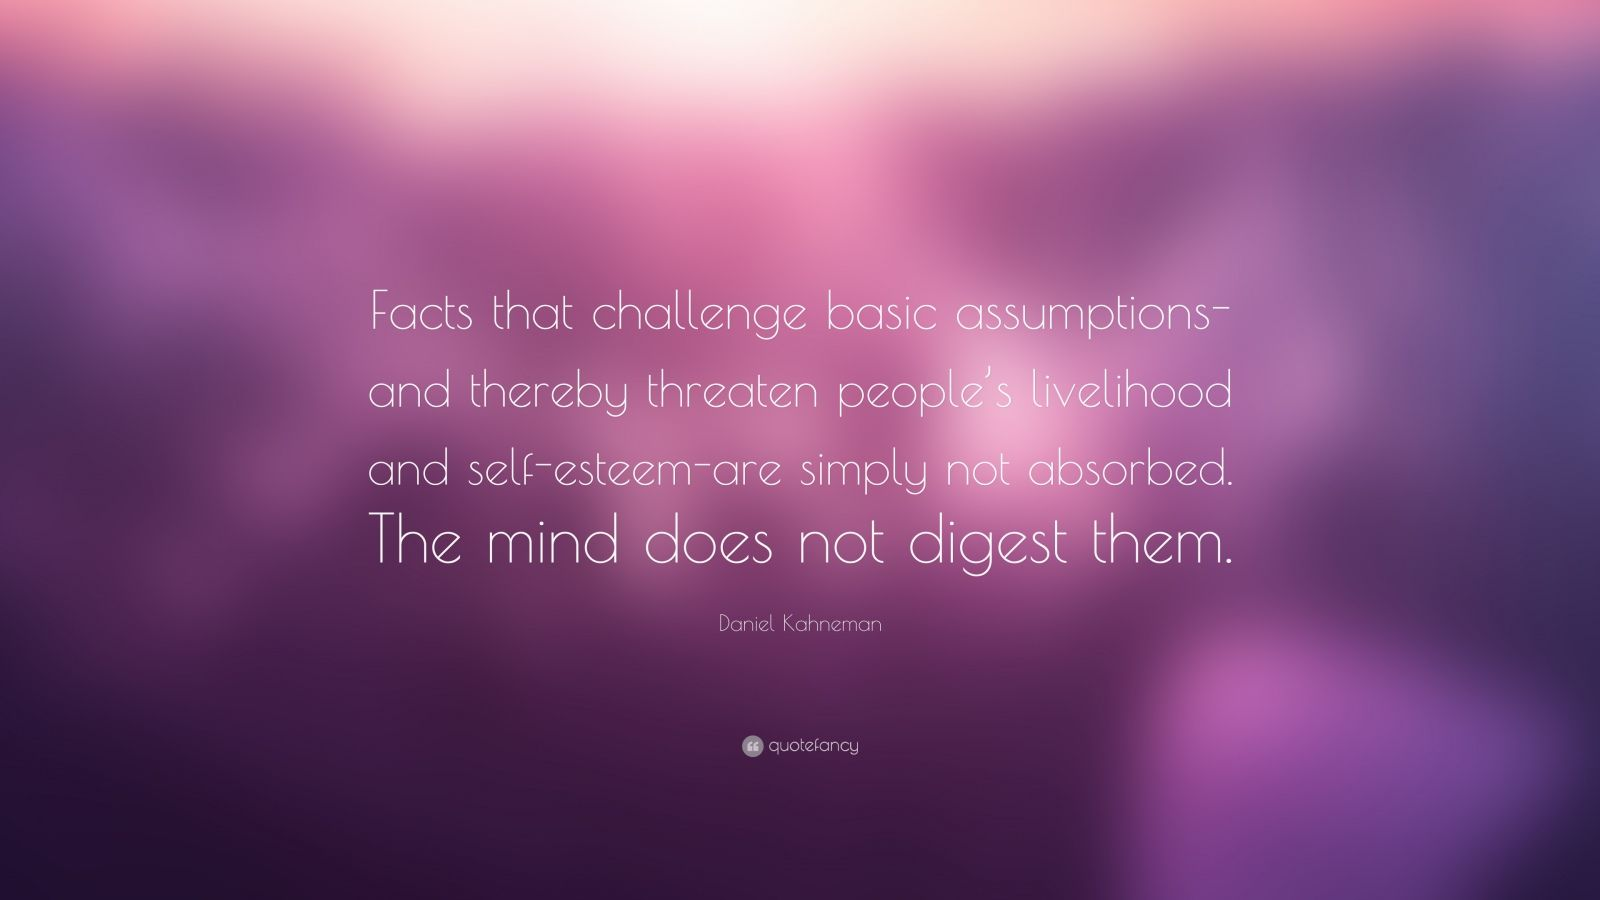 """Daniel Kahneman Quote: """"Facts that challenge basic assumptions-and thereby threaten people's livelihood and self-esteem-are simply not absorbed. The mind does not digest them."""""""